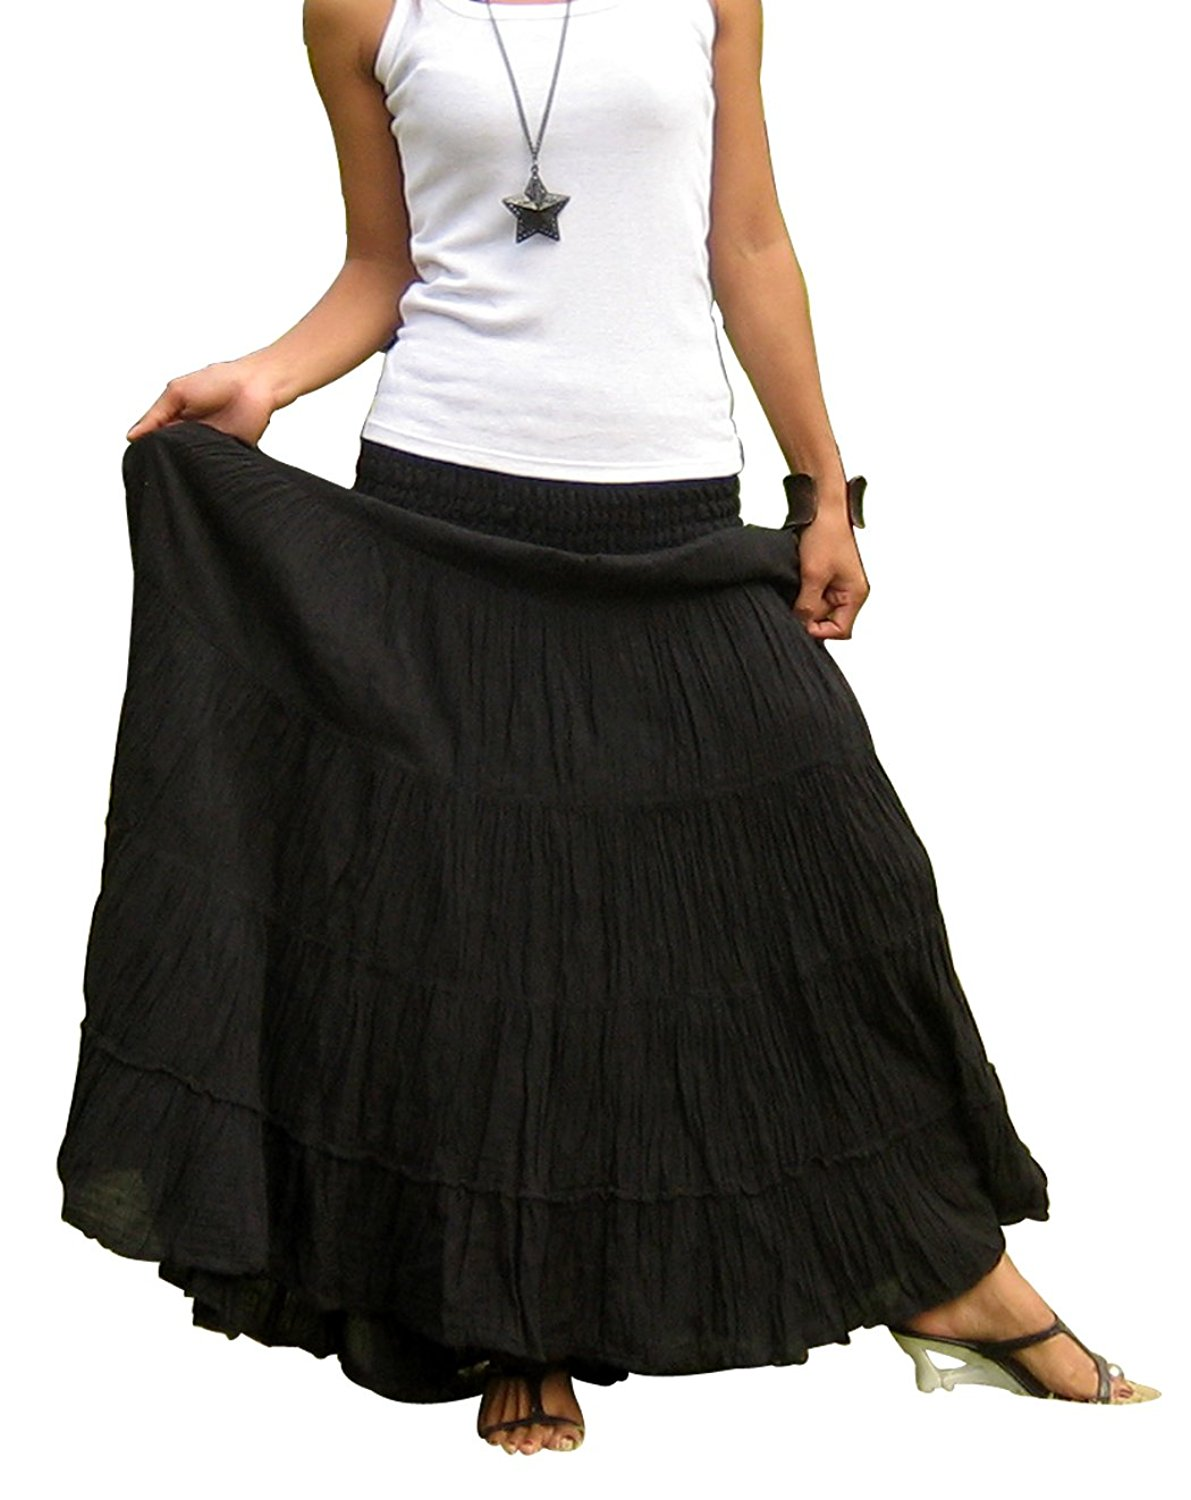 772810afde Get Quotations · Billy's Thai Shop Tiered Skirt Long Skirts for Women Boho  Gypsy Skirts Handmade Maxi Skirts for